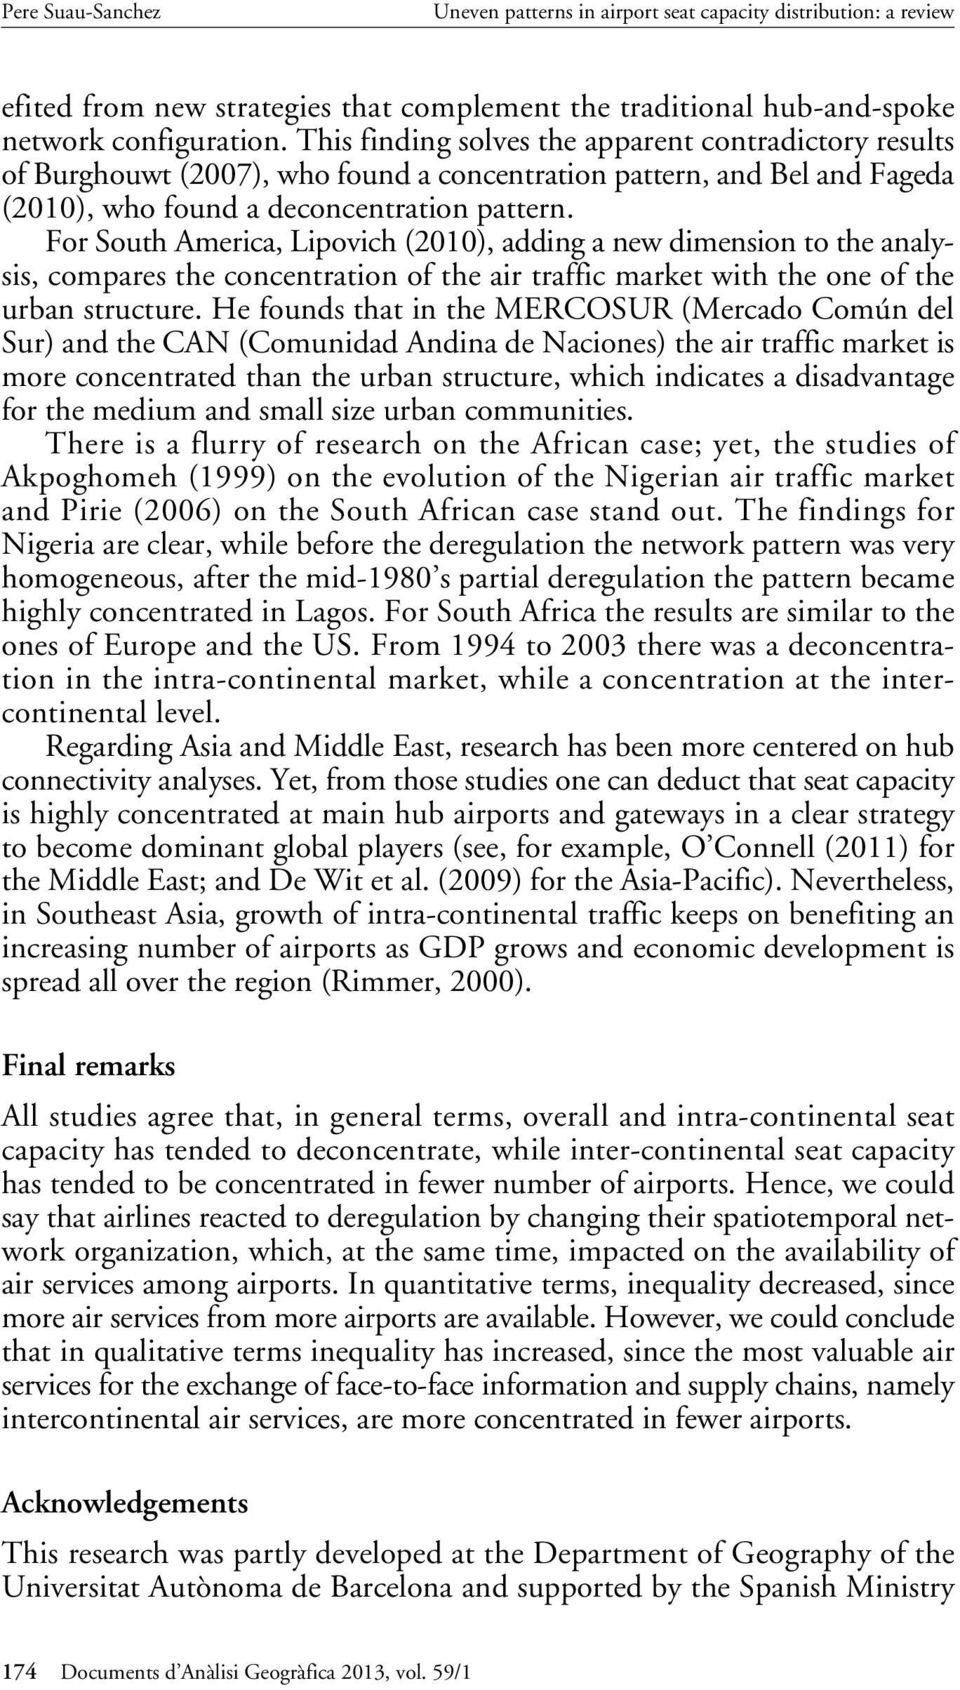 For South America, Lipovich (2010), adding a new dimension to the analysis, compares the concentration of the air traffic market with the one of the urban structure.